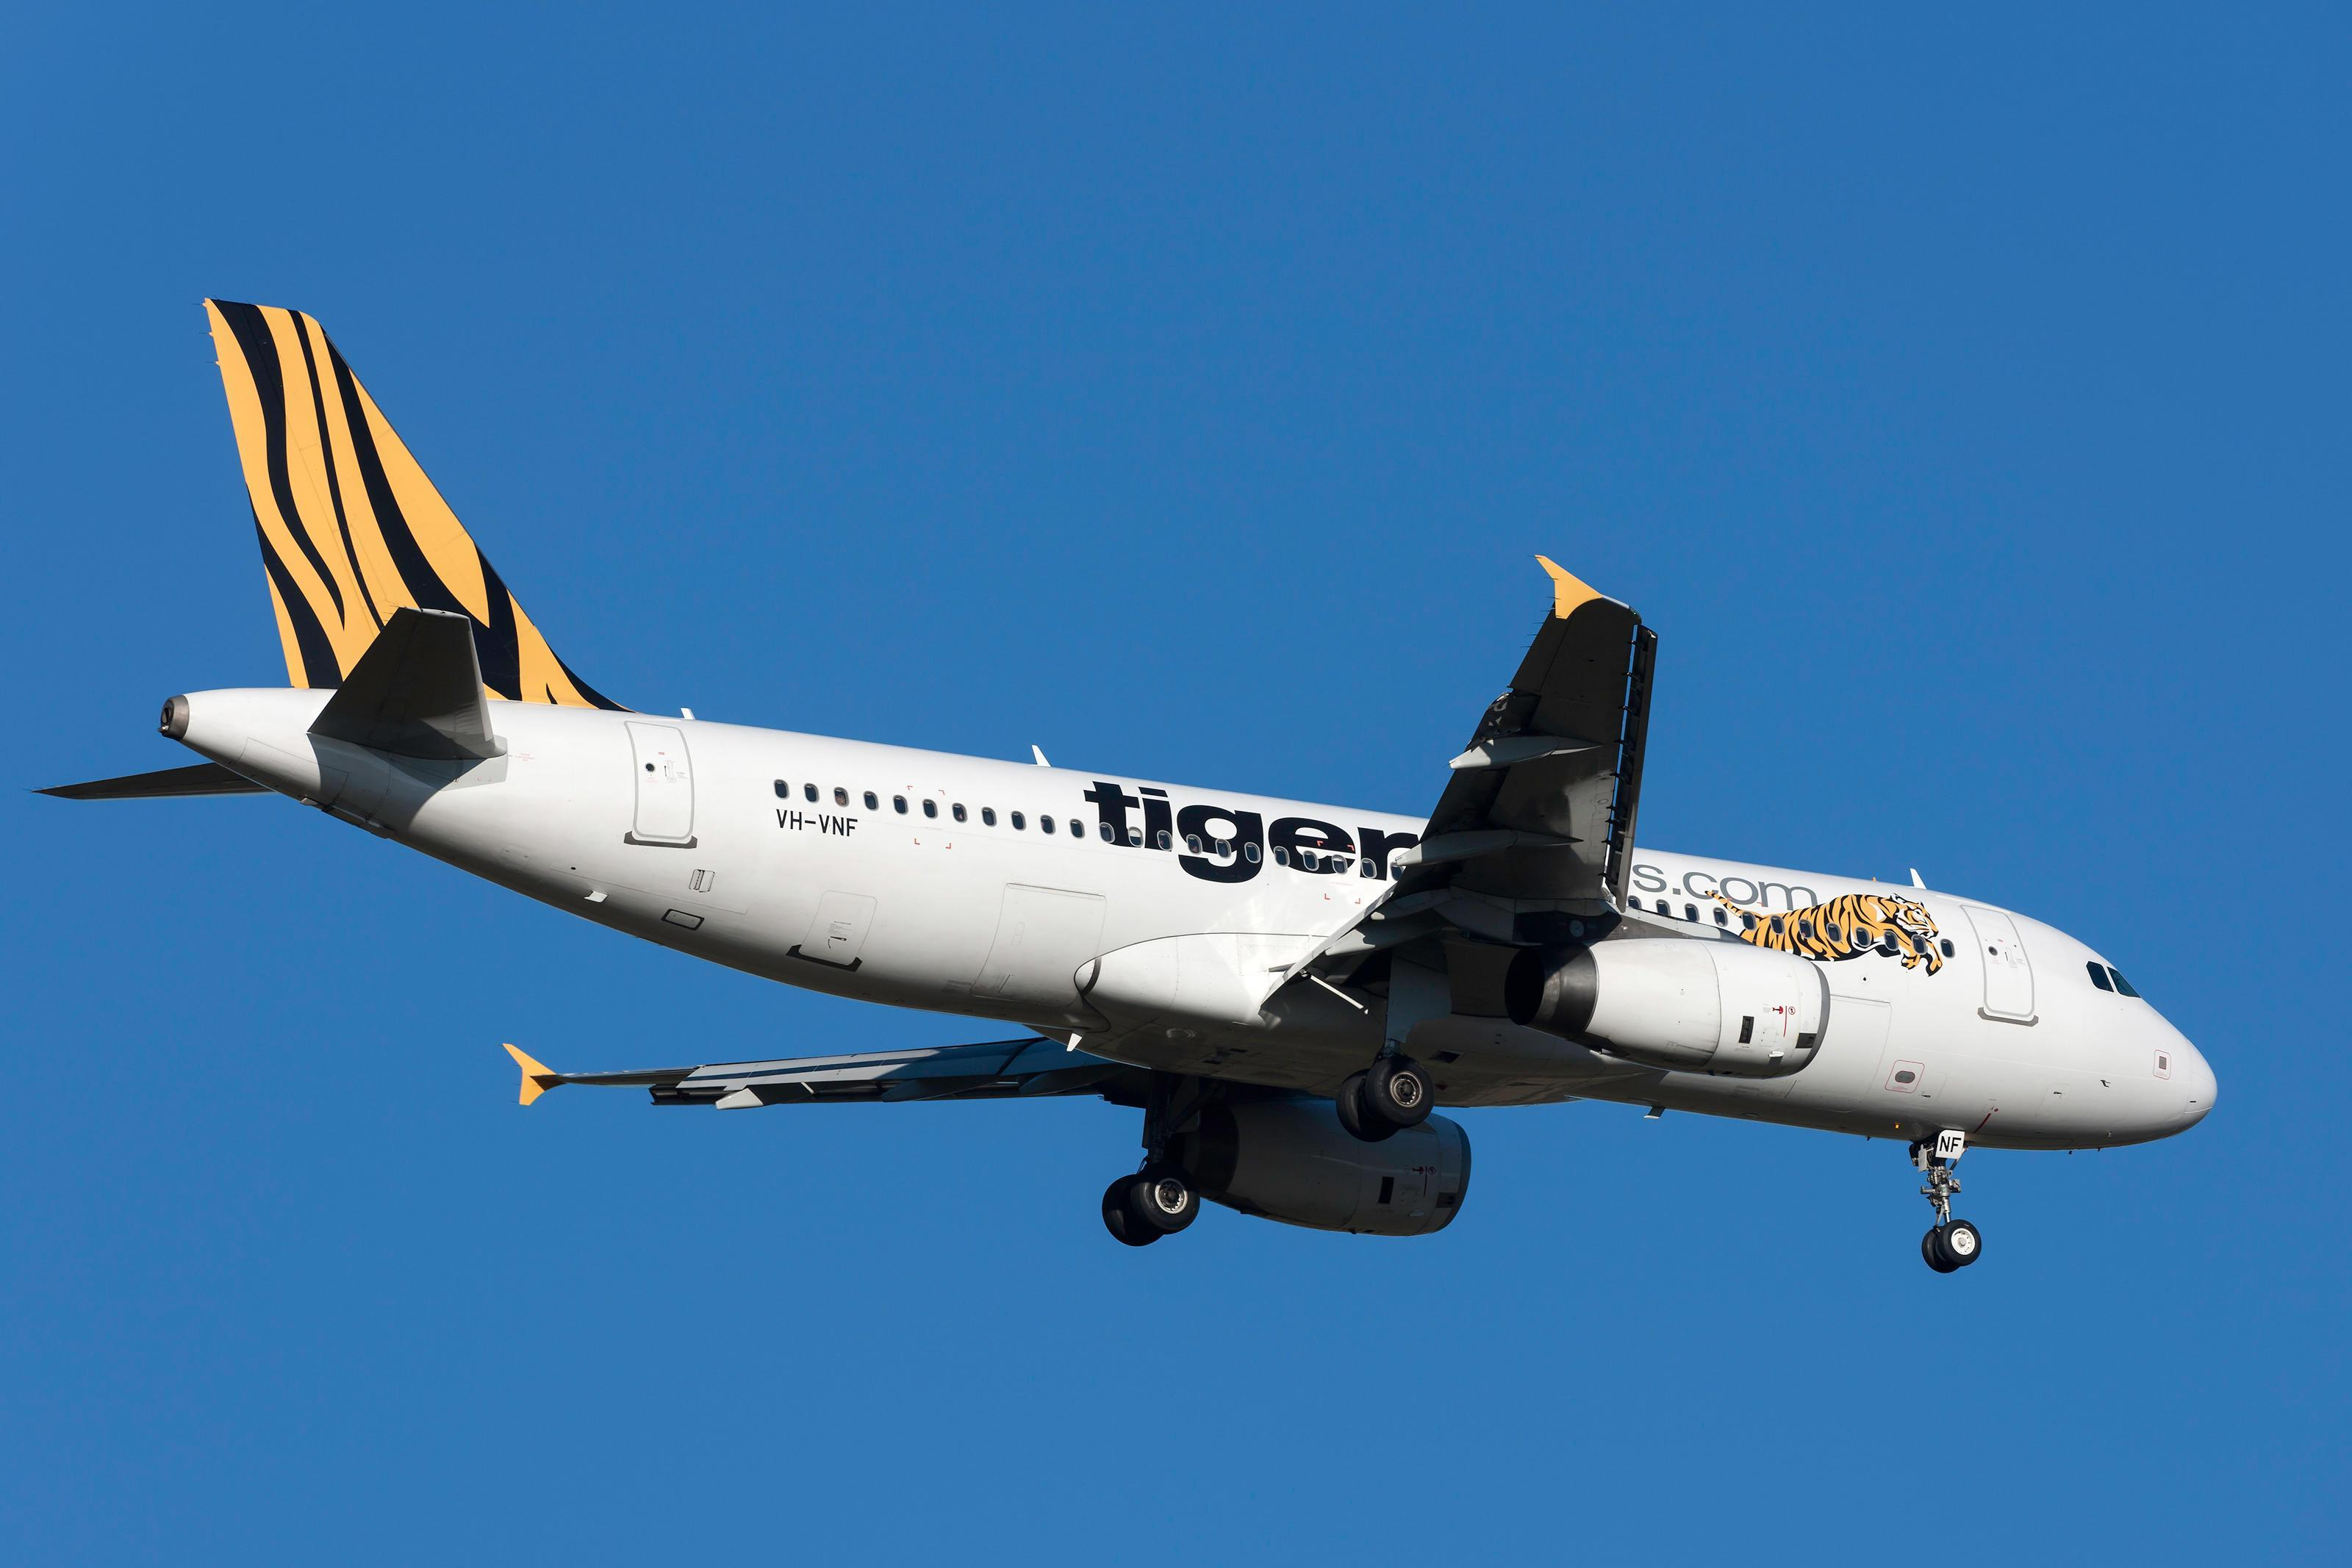 Horrified woman suffers flight from hell after passenger 'masturbated' next to her on Tigerair jet – then asks if she has a boyfriend